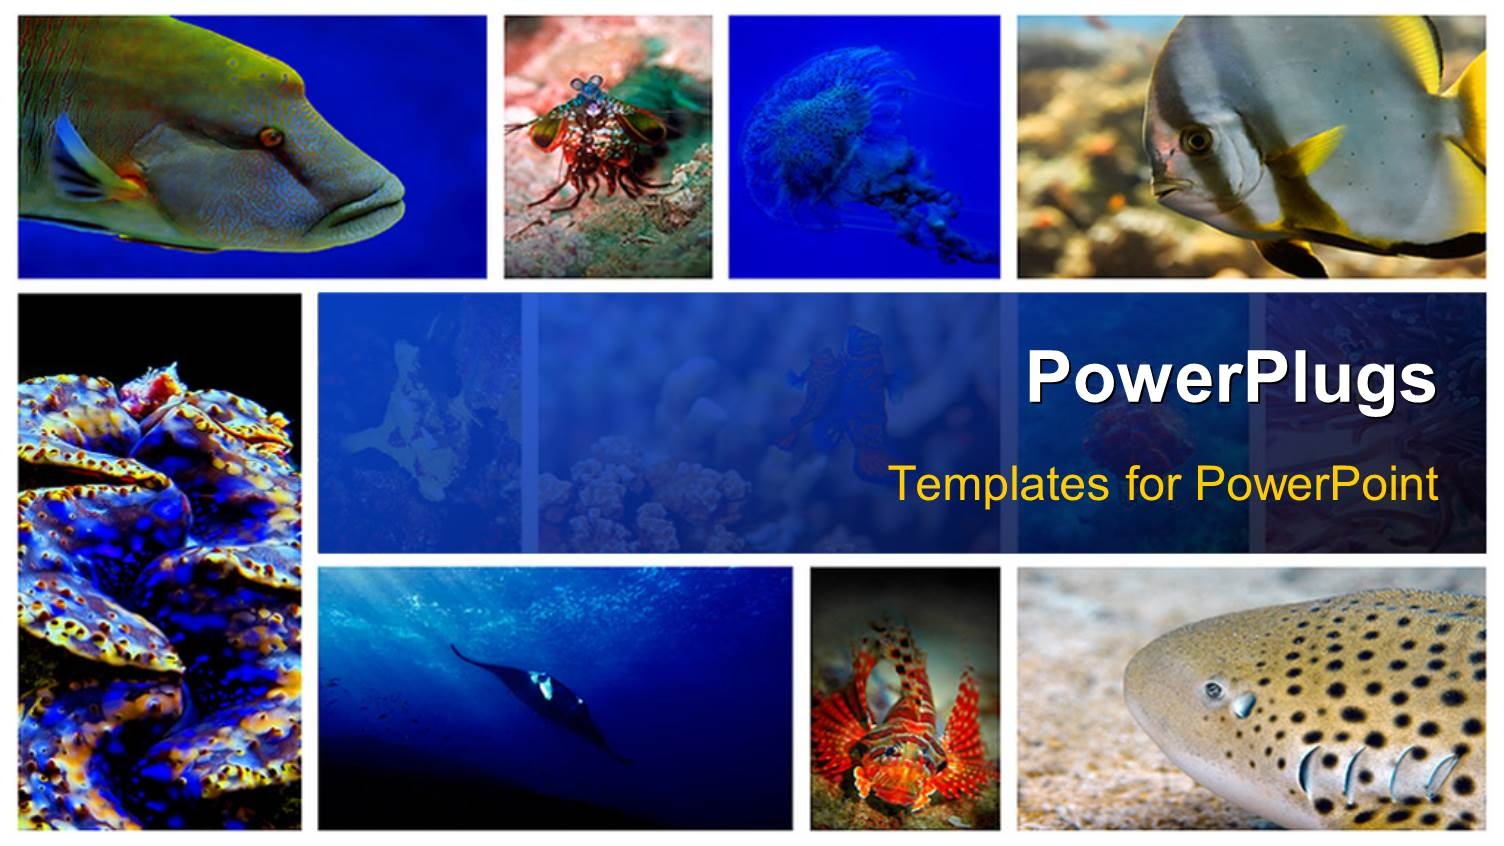 Powerpoint template a number of figures related to sea life in powerpoint template displaying a number of figures related to sea life in the picture toneelgroepblik Images